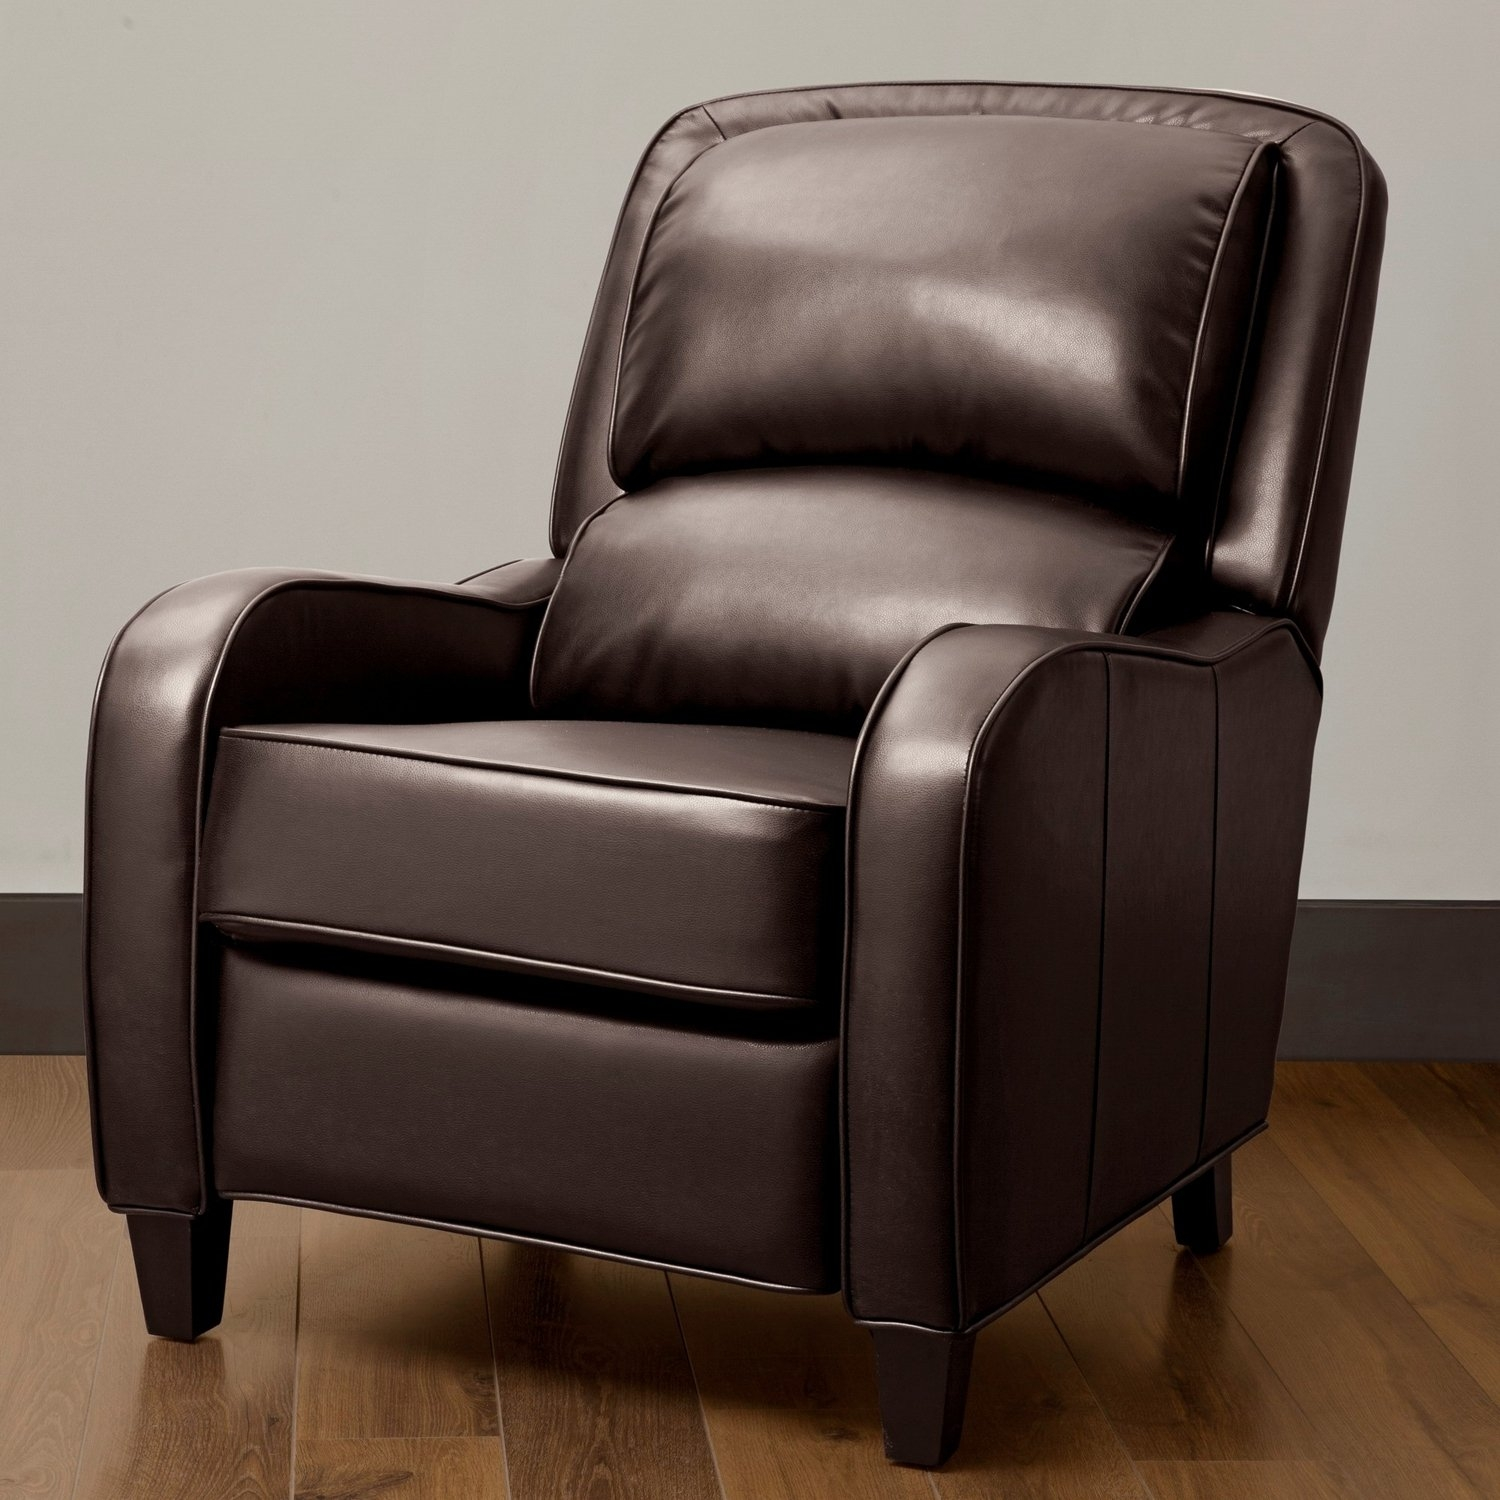 Bedroom. Cute Recliners For Small Spaces. Decoriest Home .